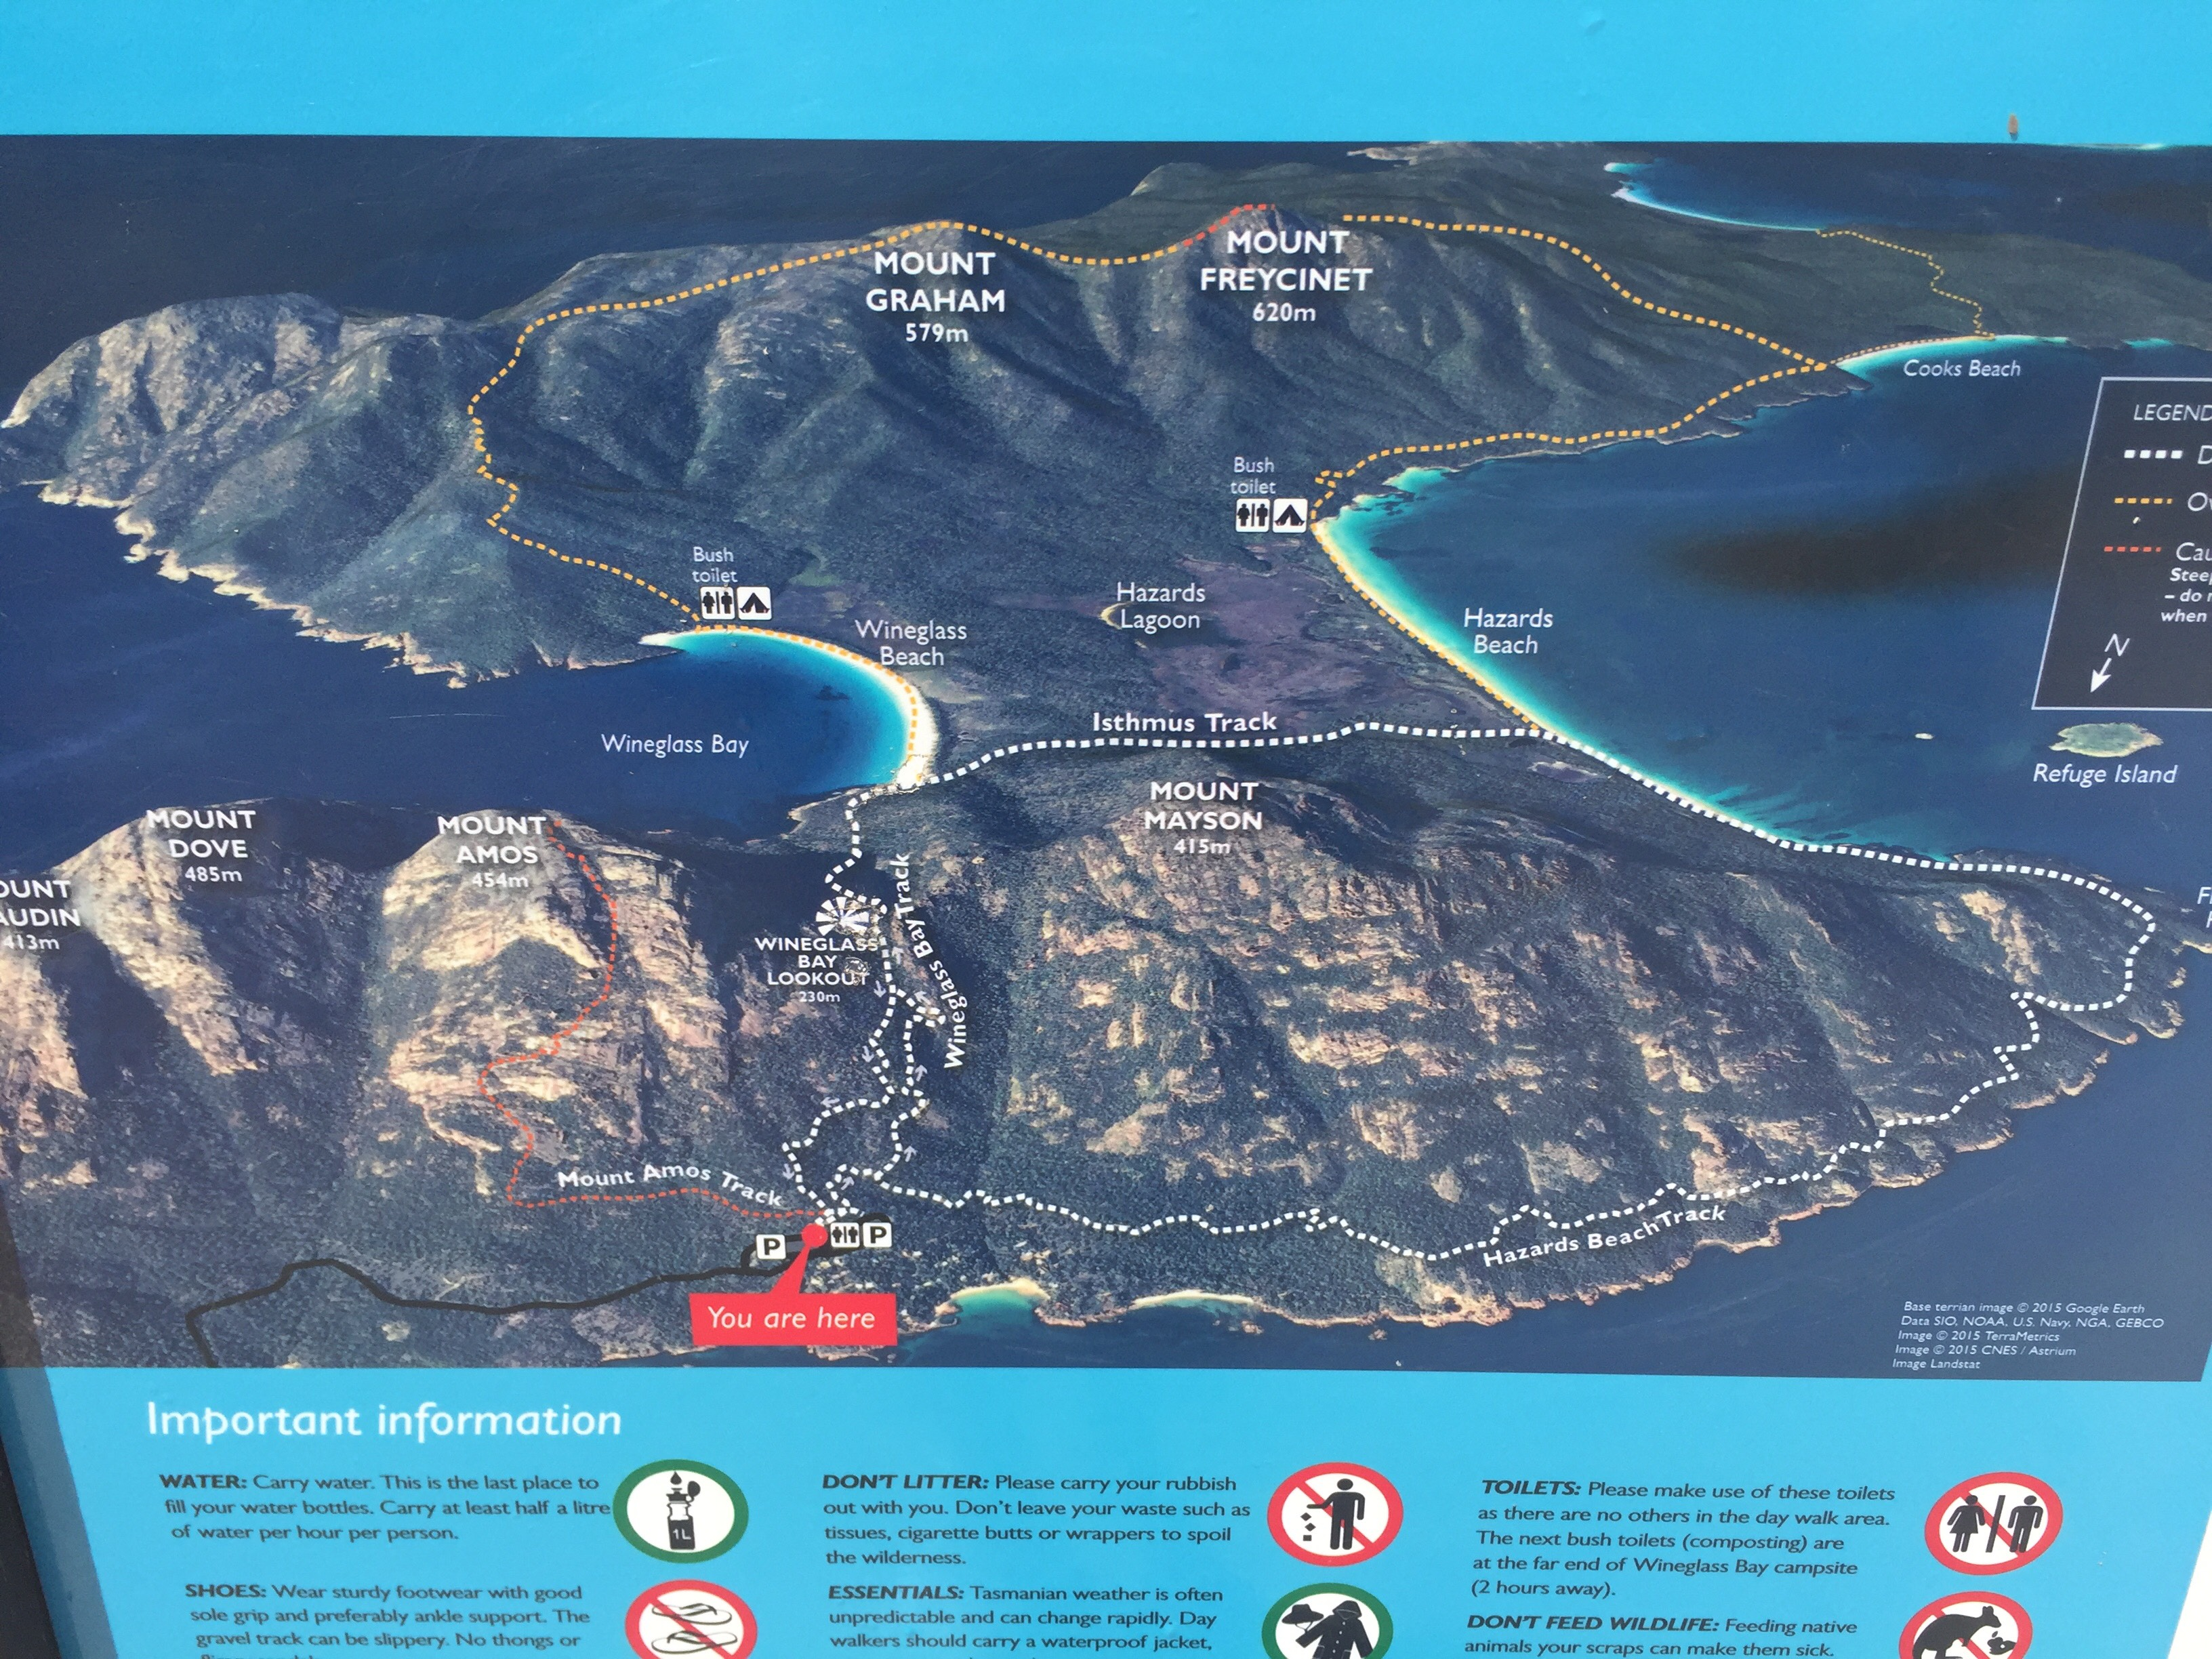 Wineglass Bay Lookout Trail map